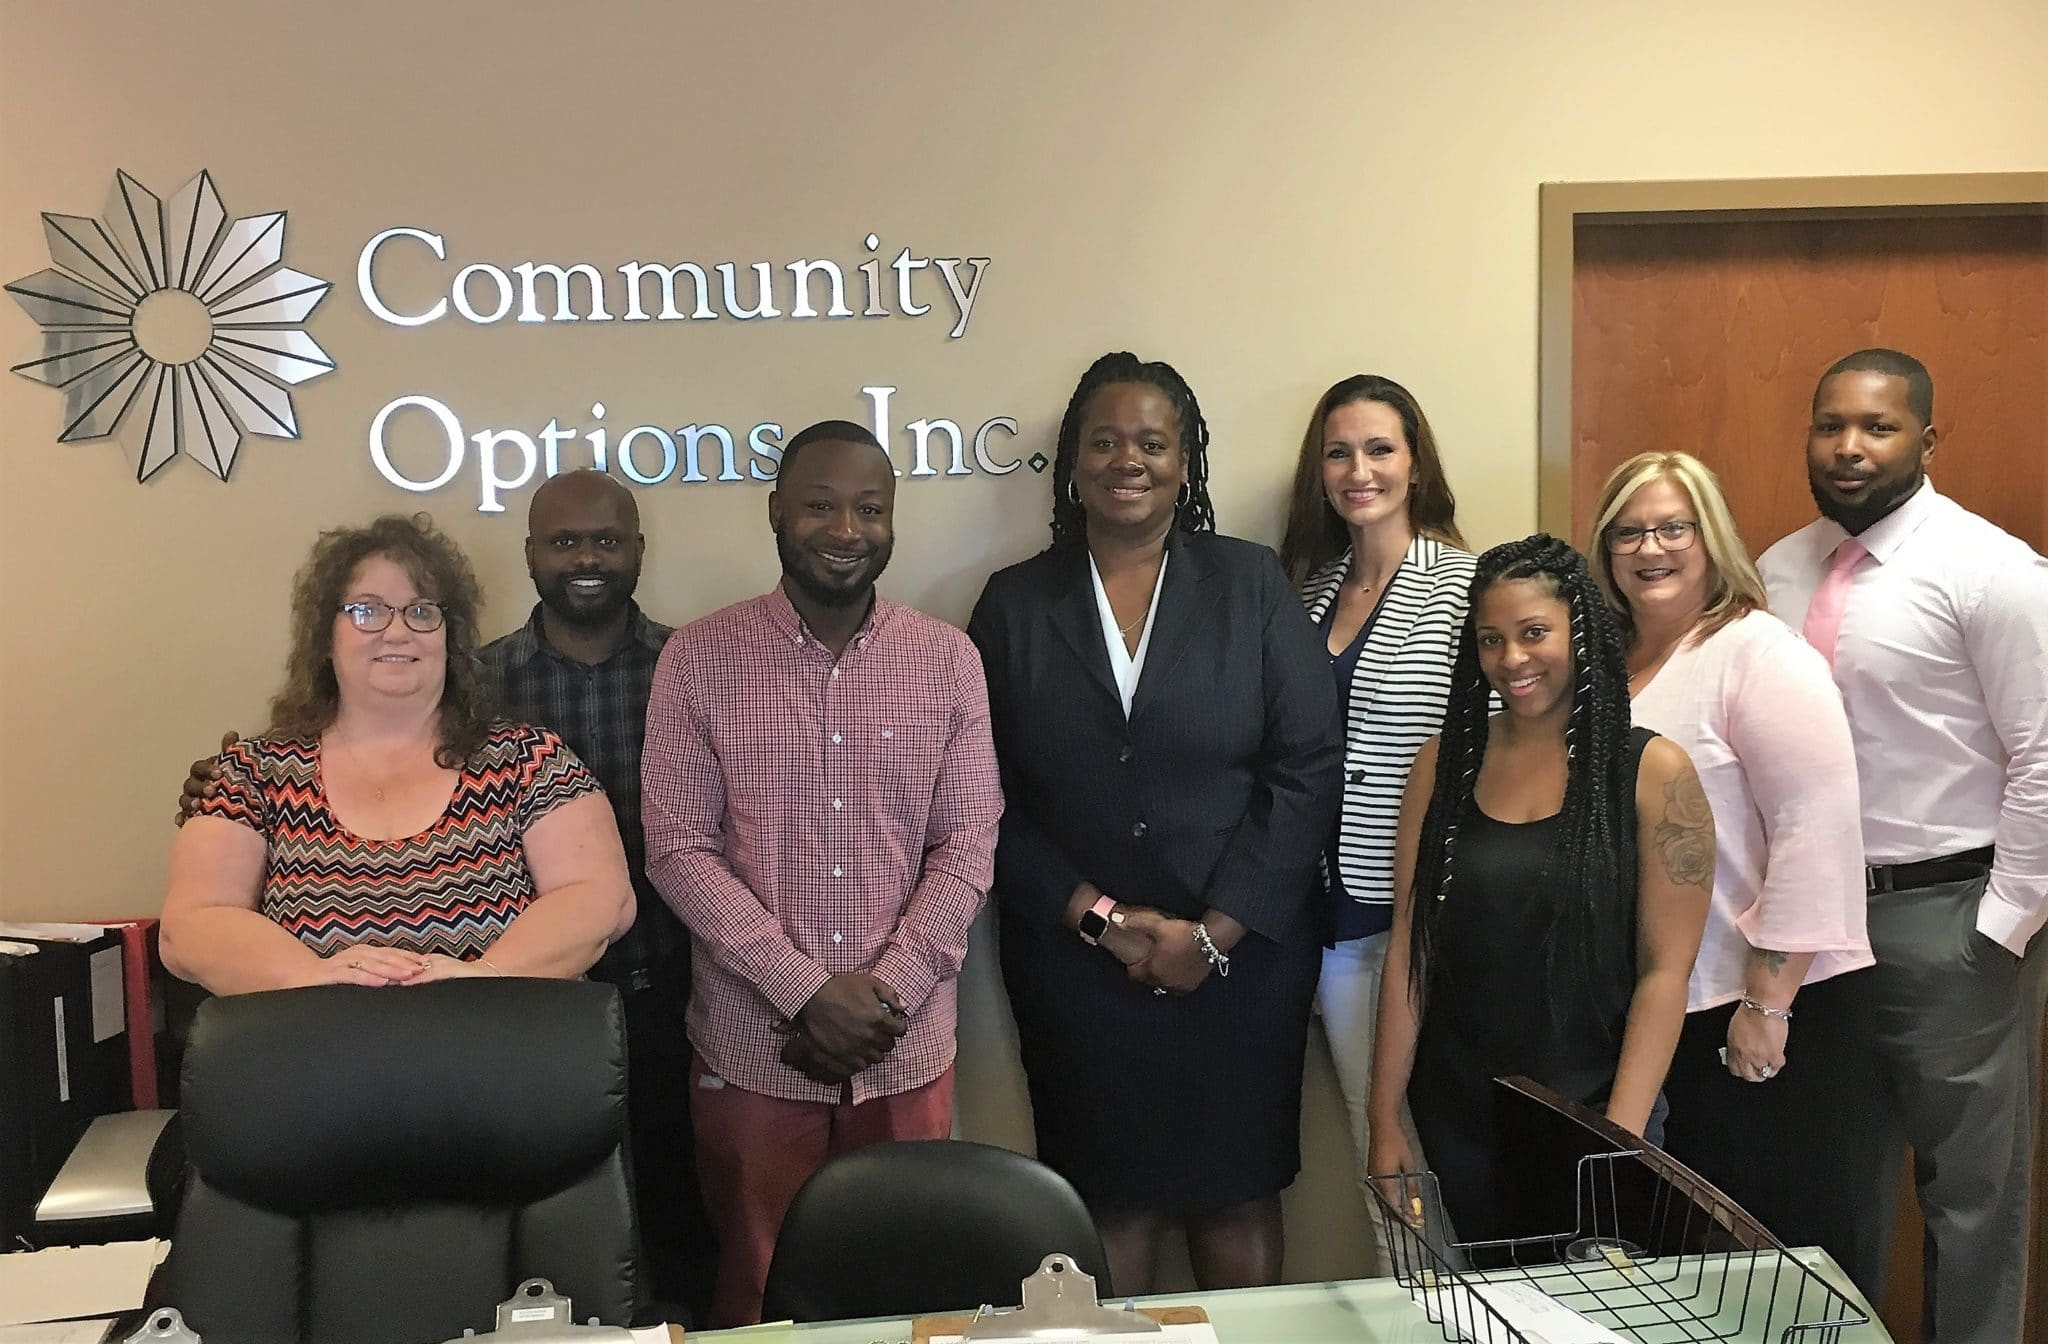 Community Options, Inc. of Nashville, TN.